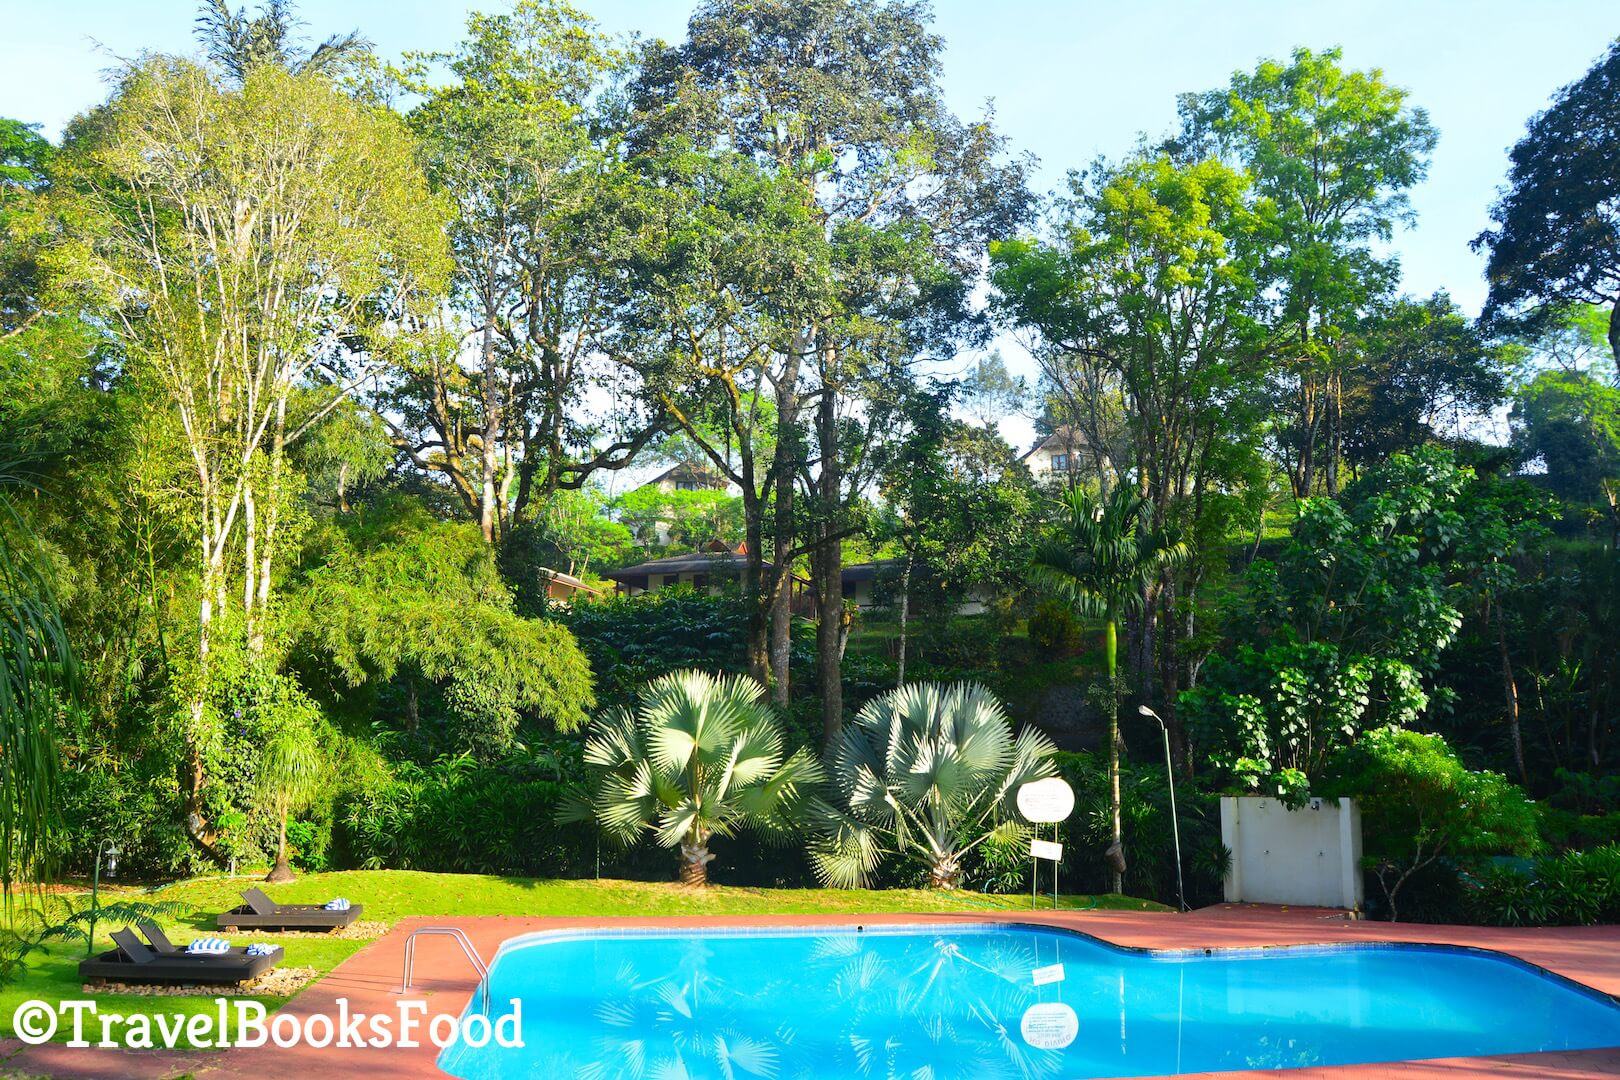 Swimming Pool surrounded by lots of big green trees in Kerala, India